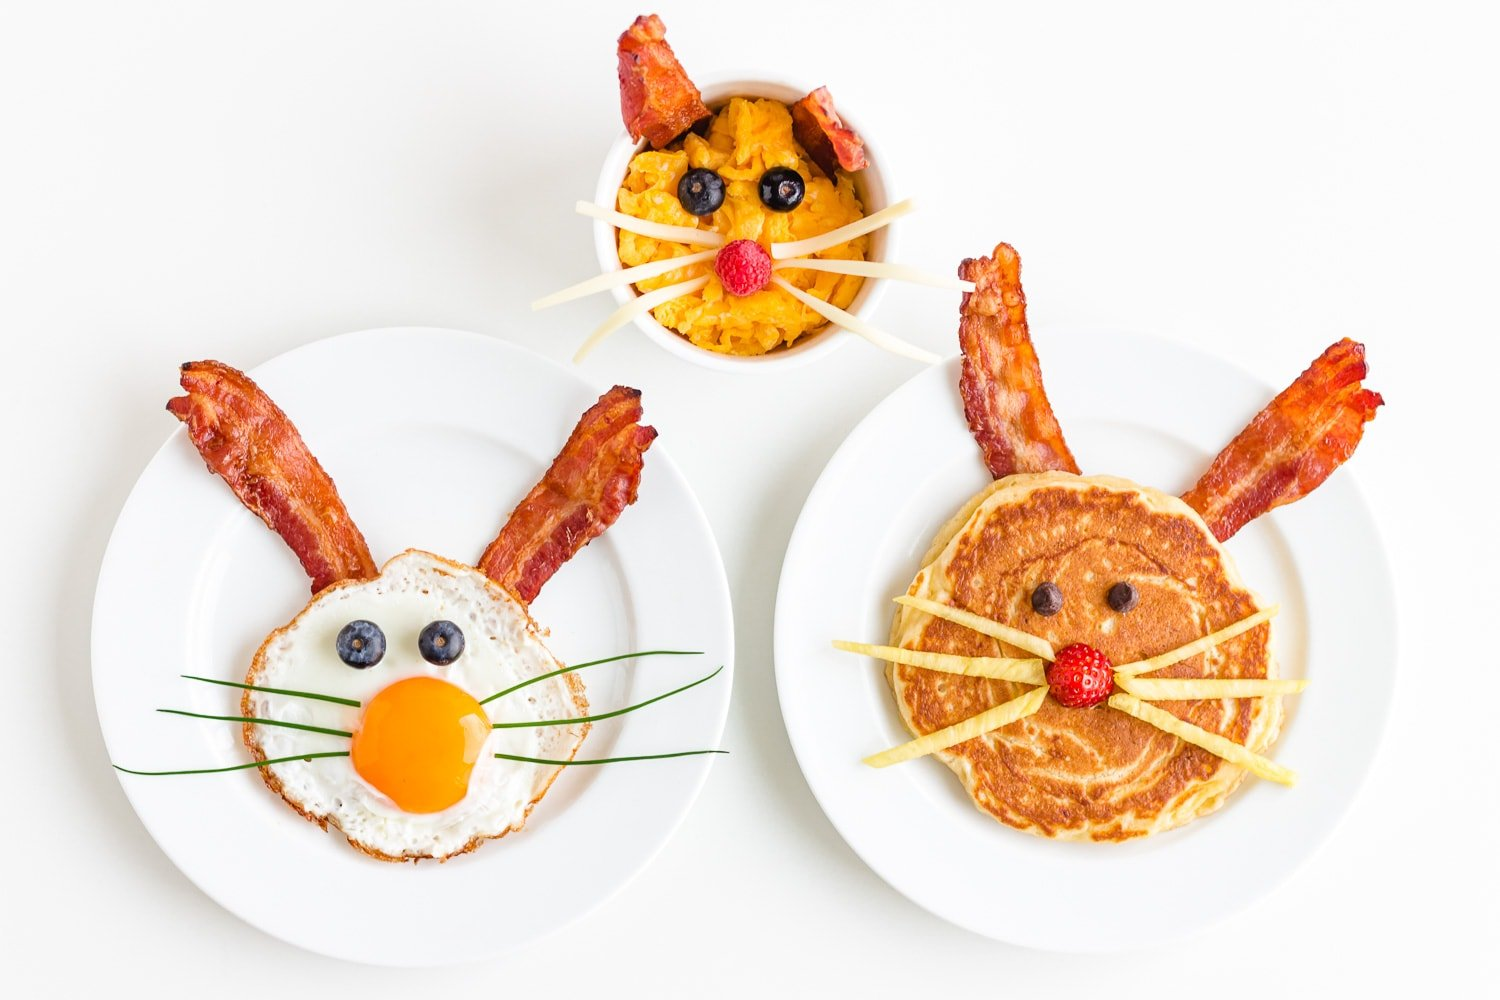 Three versions of an Easter Bunny themed breakfast including a bunny pancake, bunny scrambled eggs and a fried egg bunny.